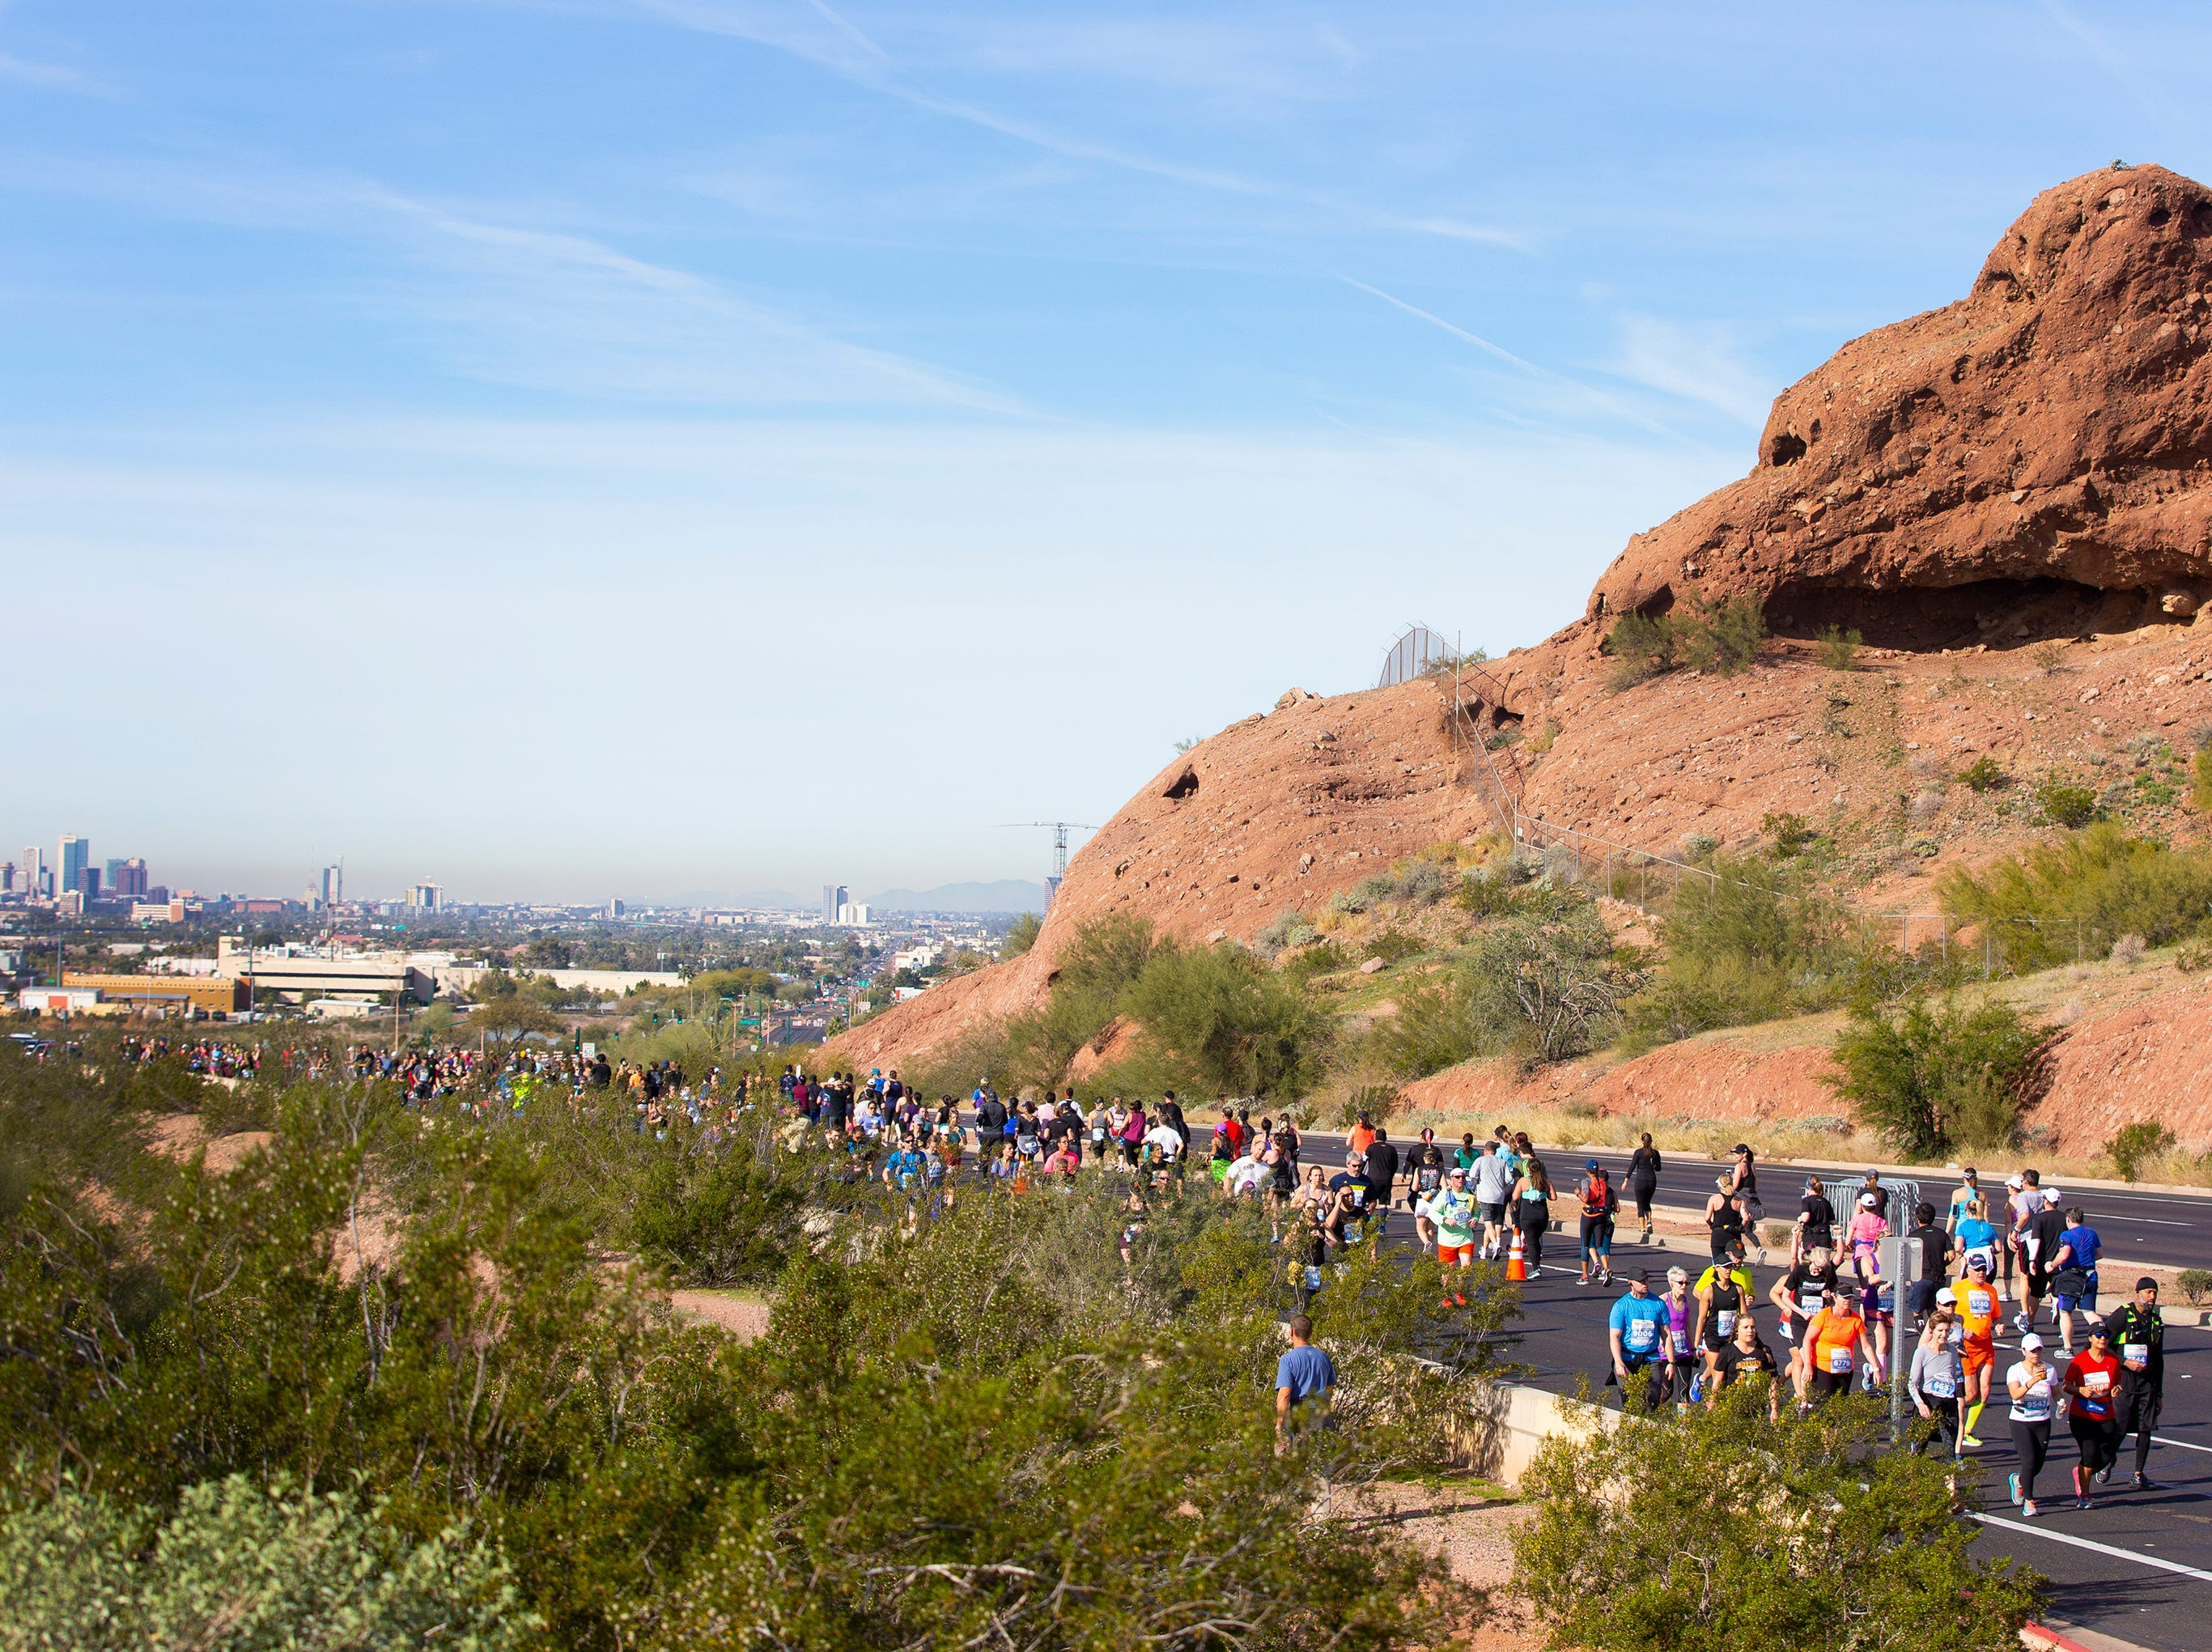 Runners compete in Humana Rock 'n' Roll half marathon near Papago Park on Jan. 20, 2019.